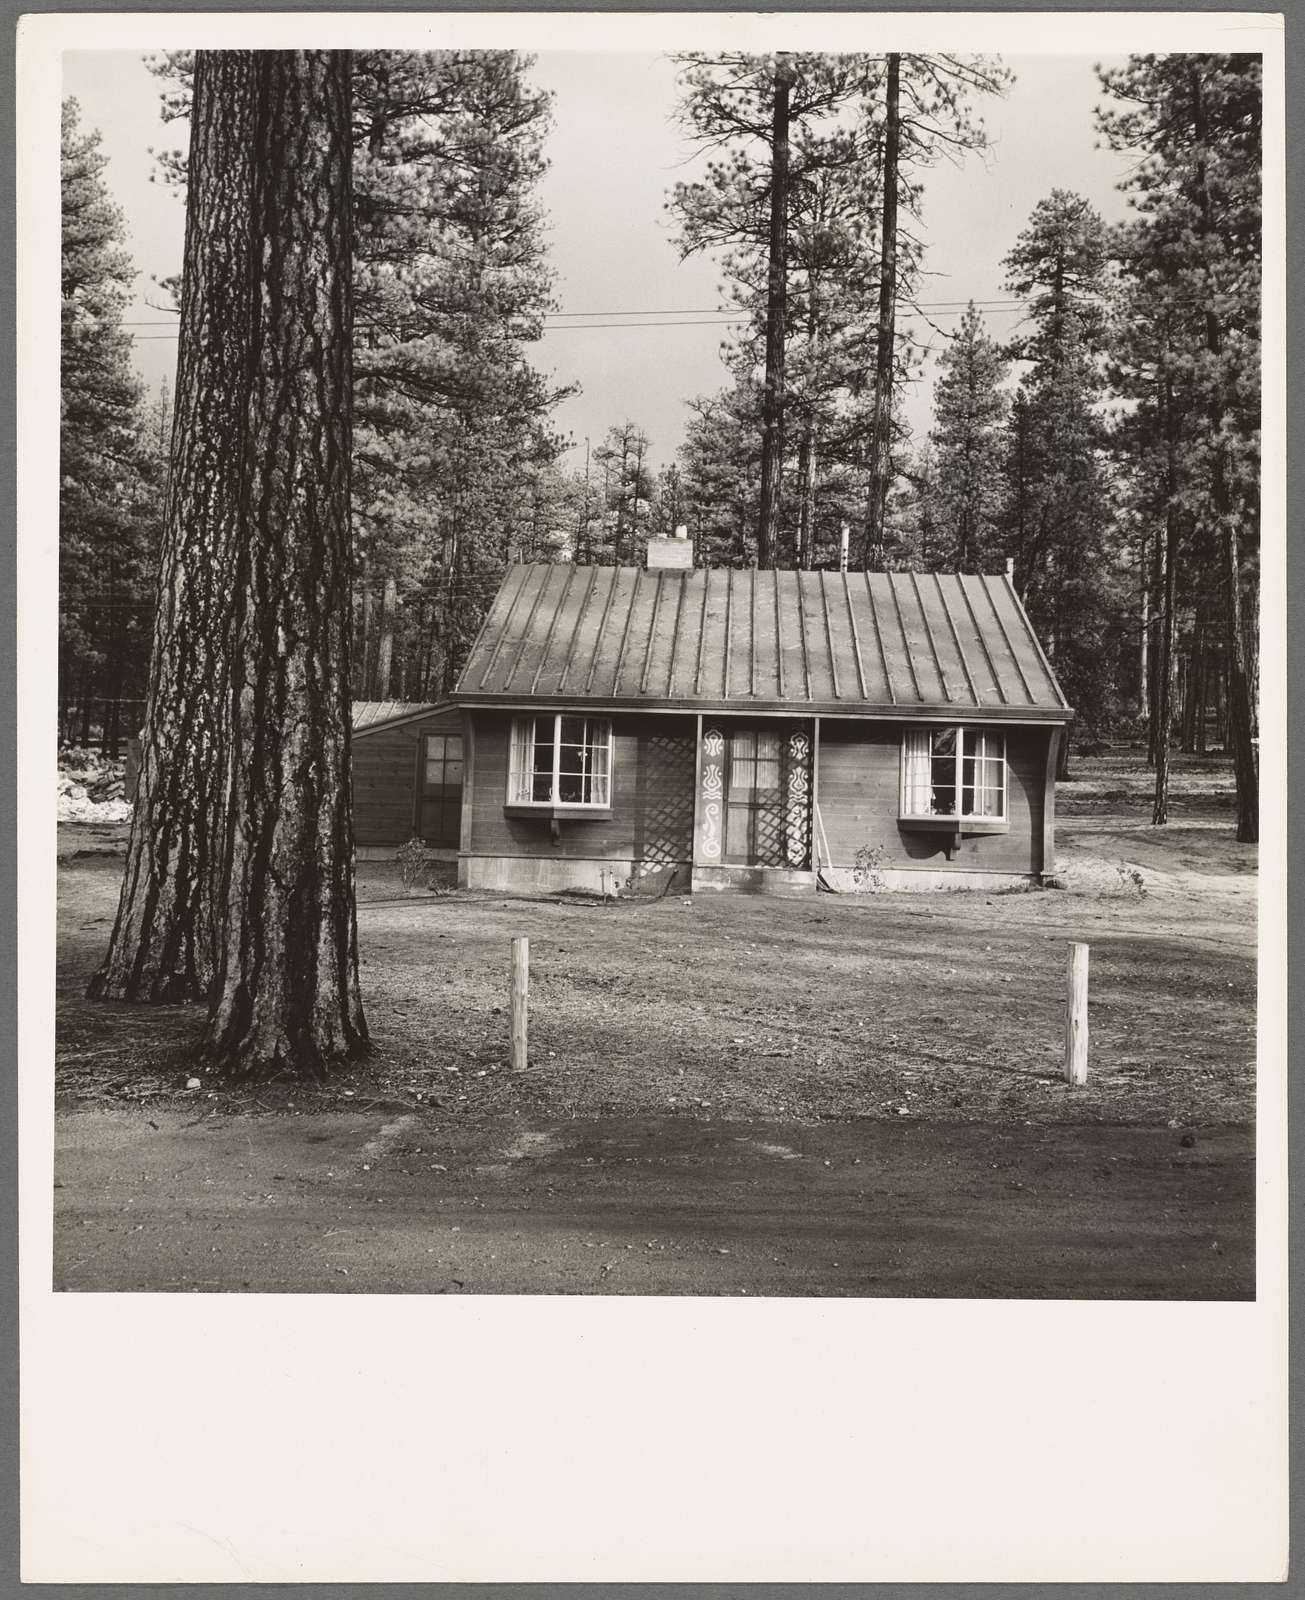 Type house in model lumber company town for millworkers. Gilchrist, Oregon. See general caption 76